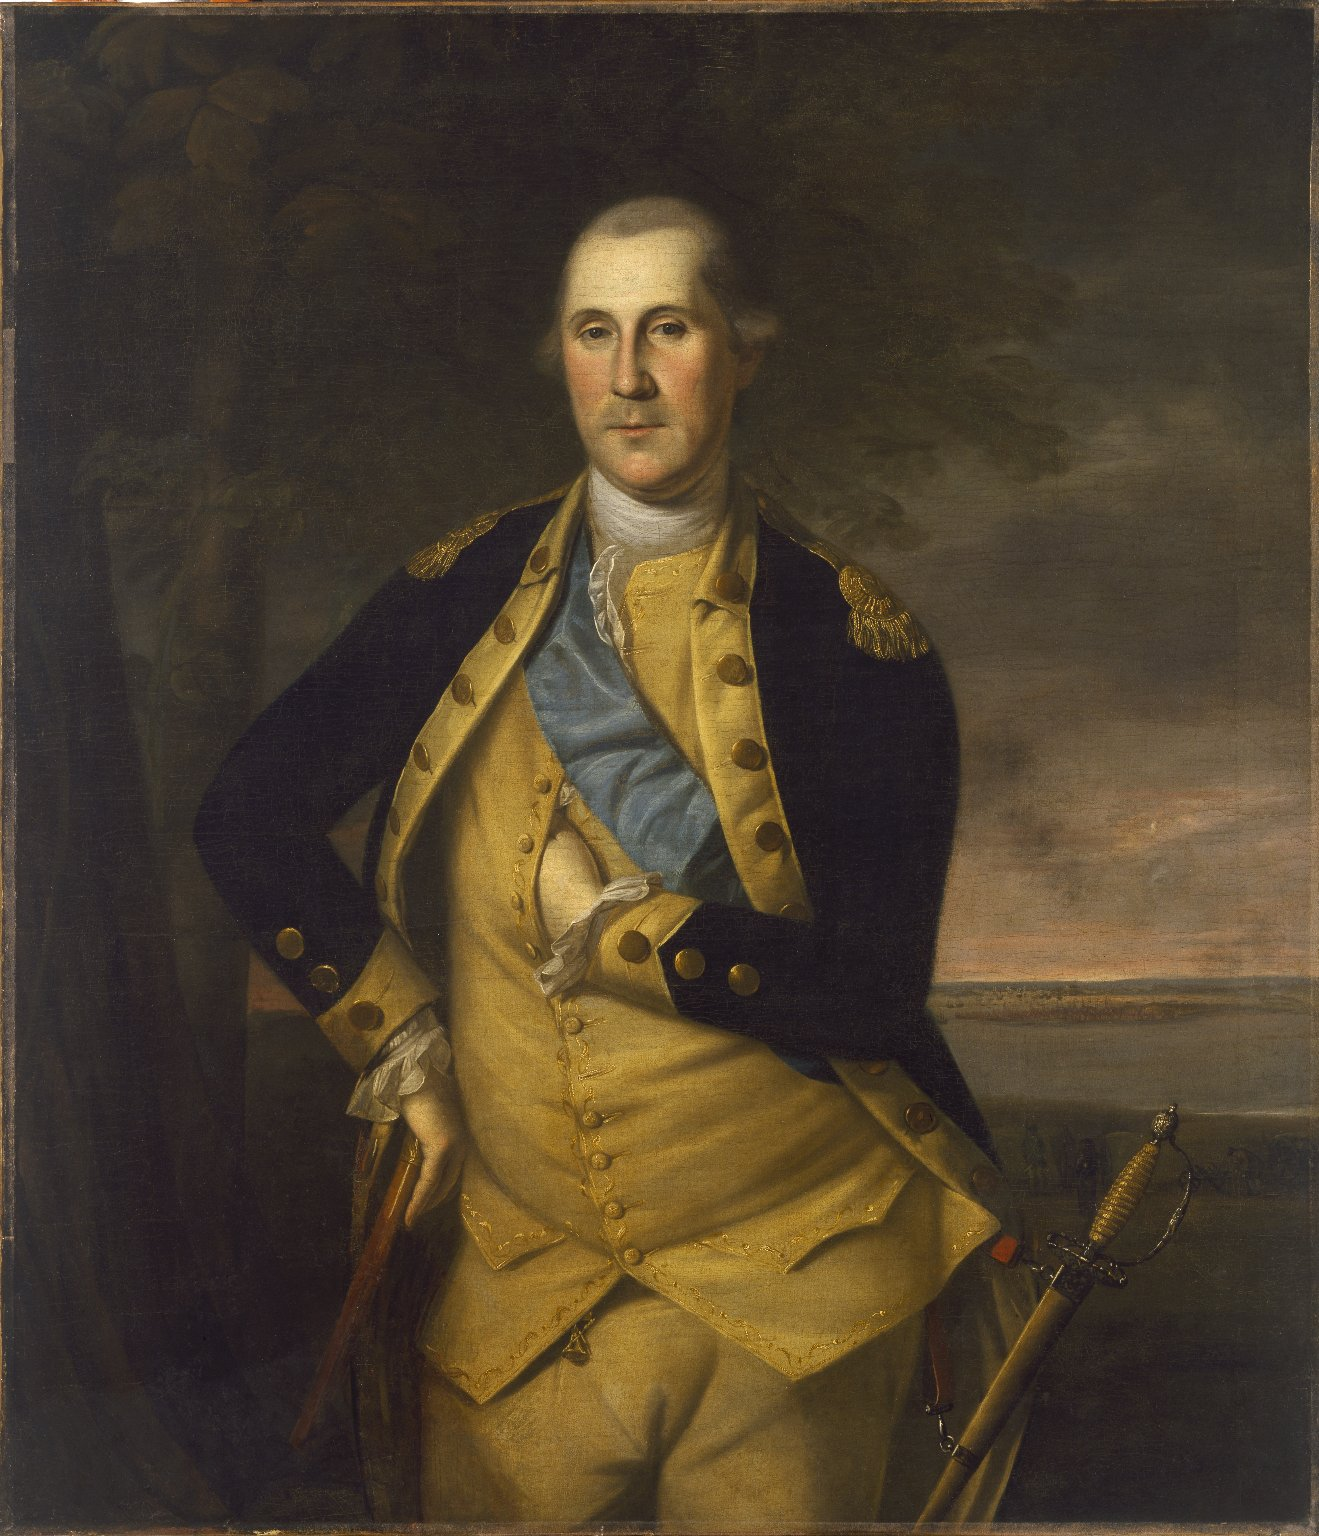 Oil on canvas painting of George Washington by Charles Willson Peale. White House copy of the original 1776 painting.